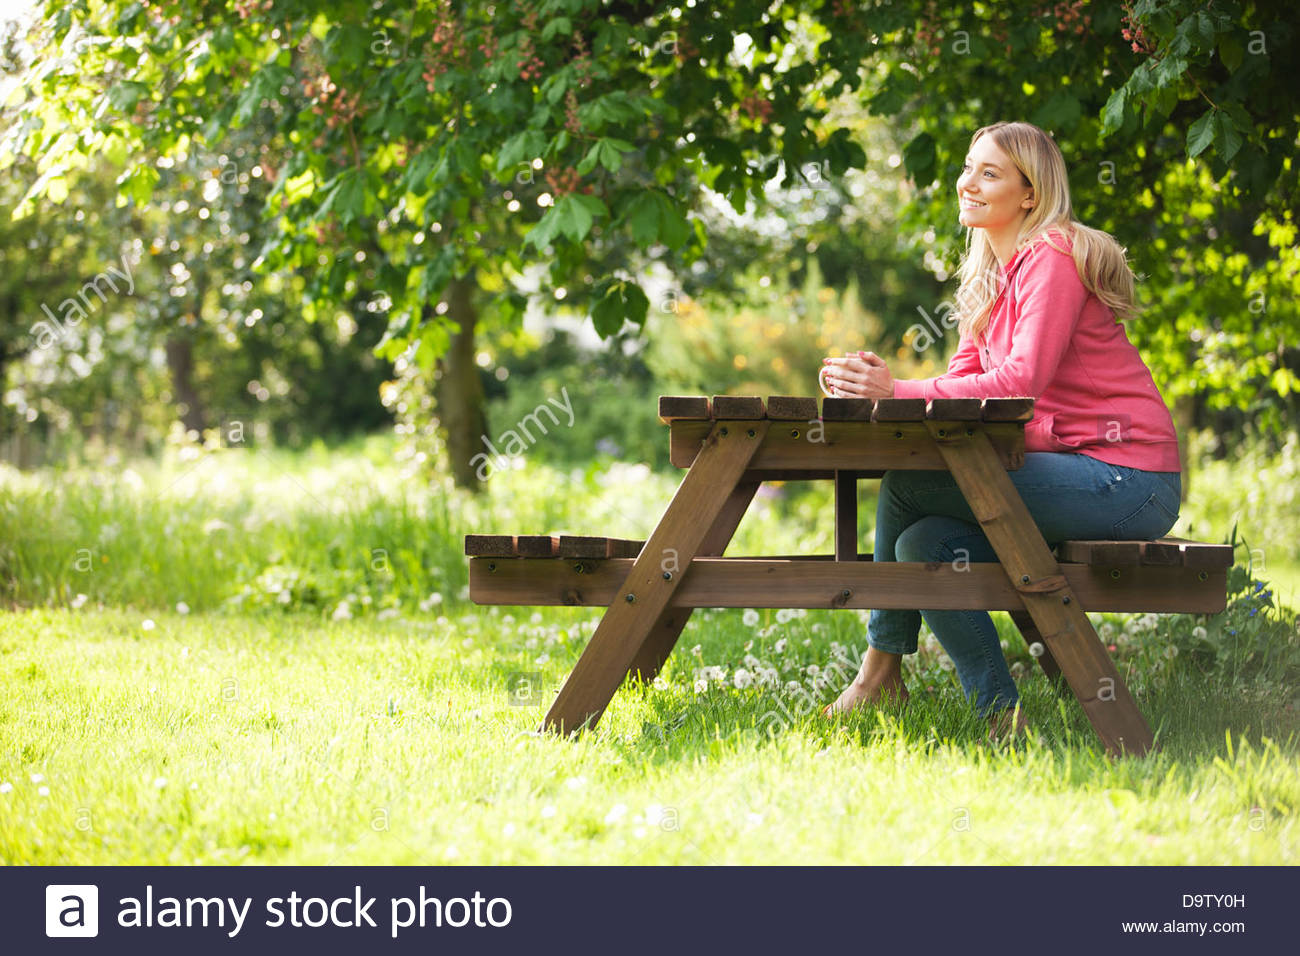 A young woman sitting at a garden bench drinking a hot beverage, smiling - Stock Image